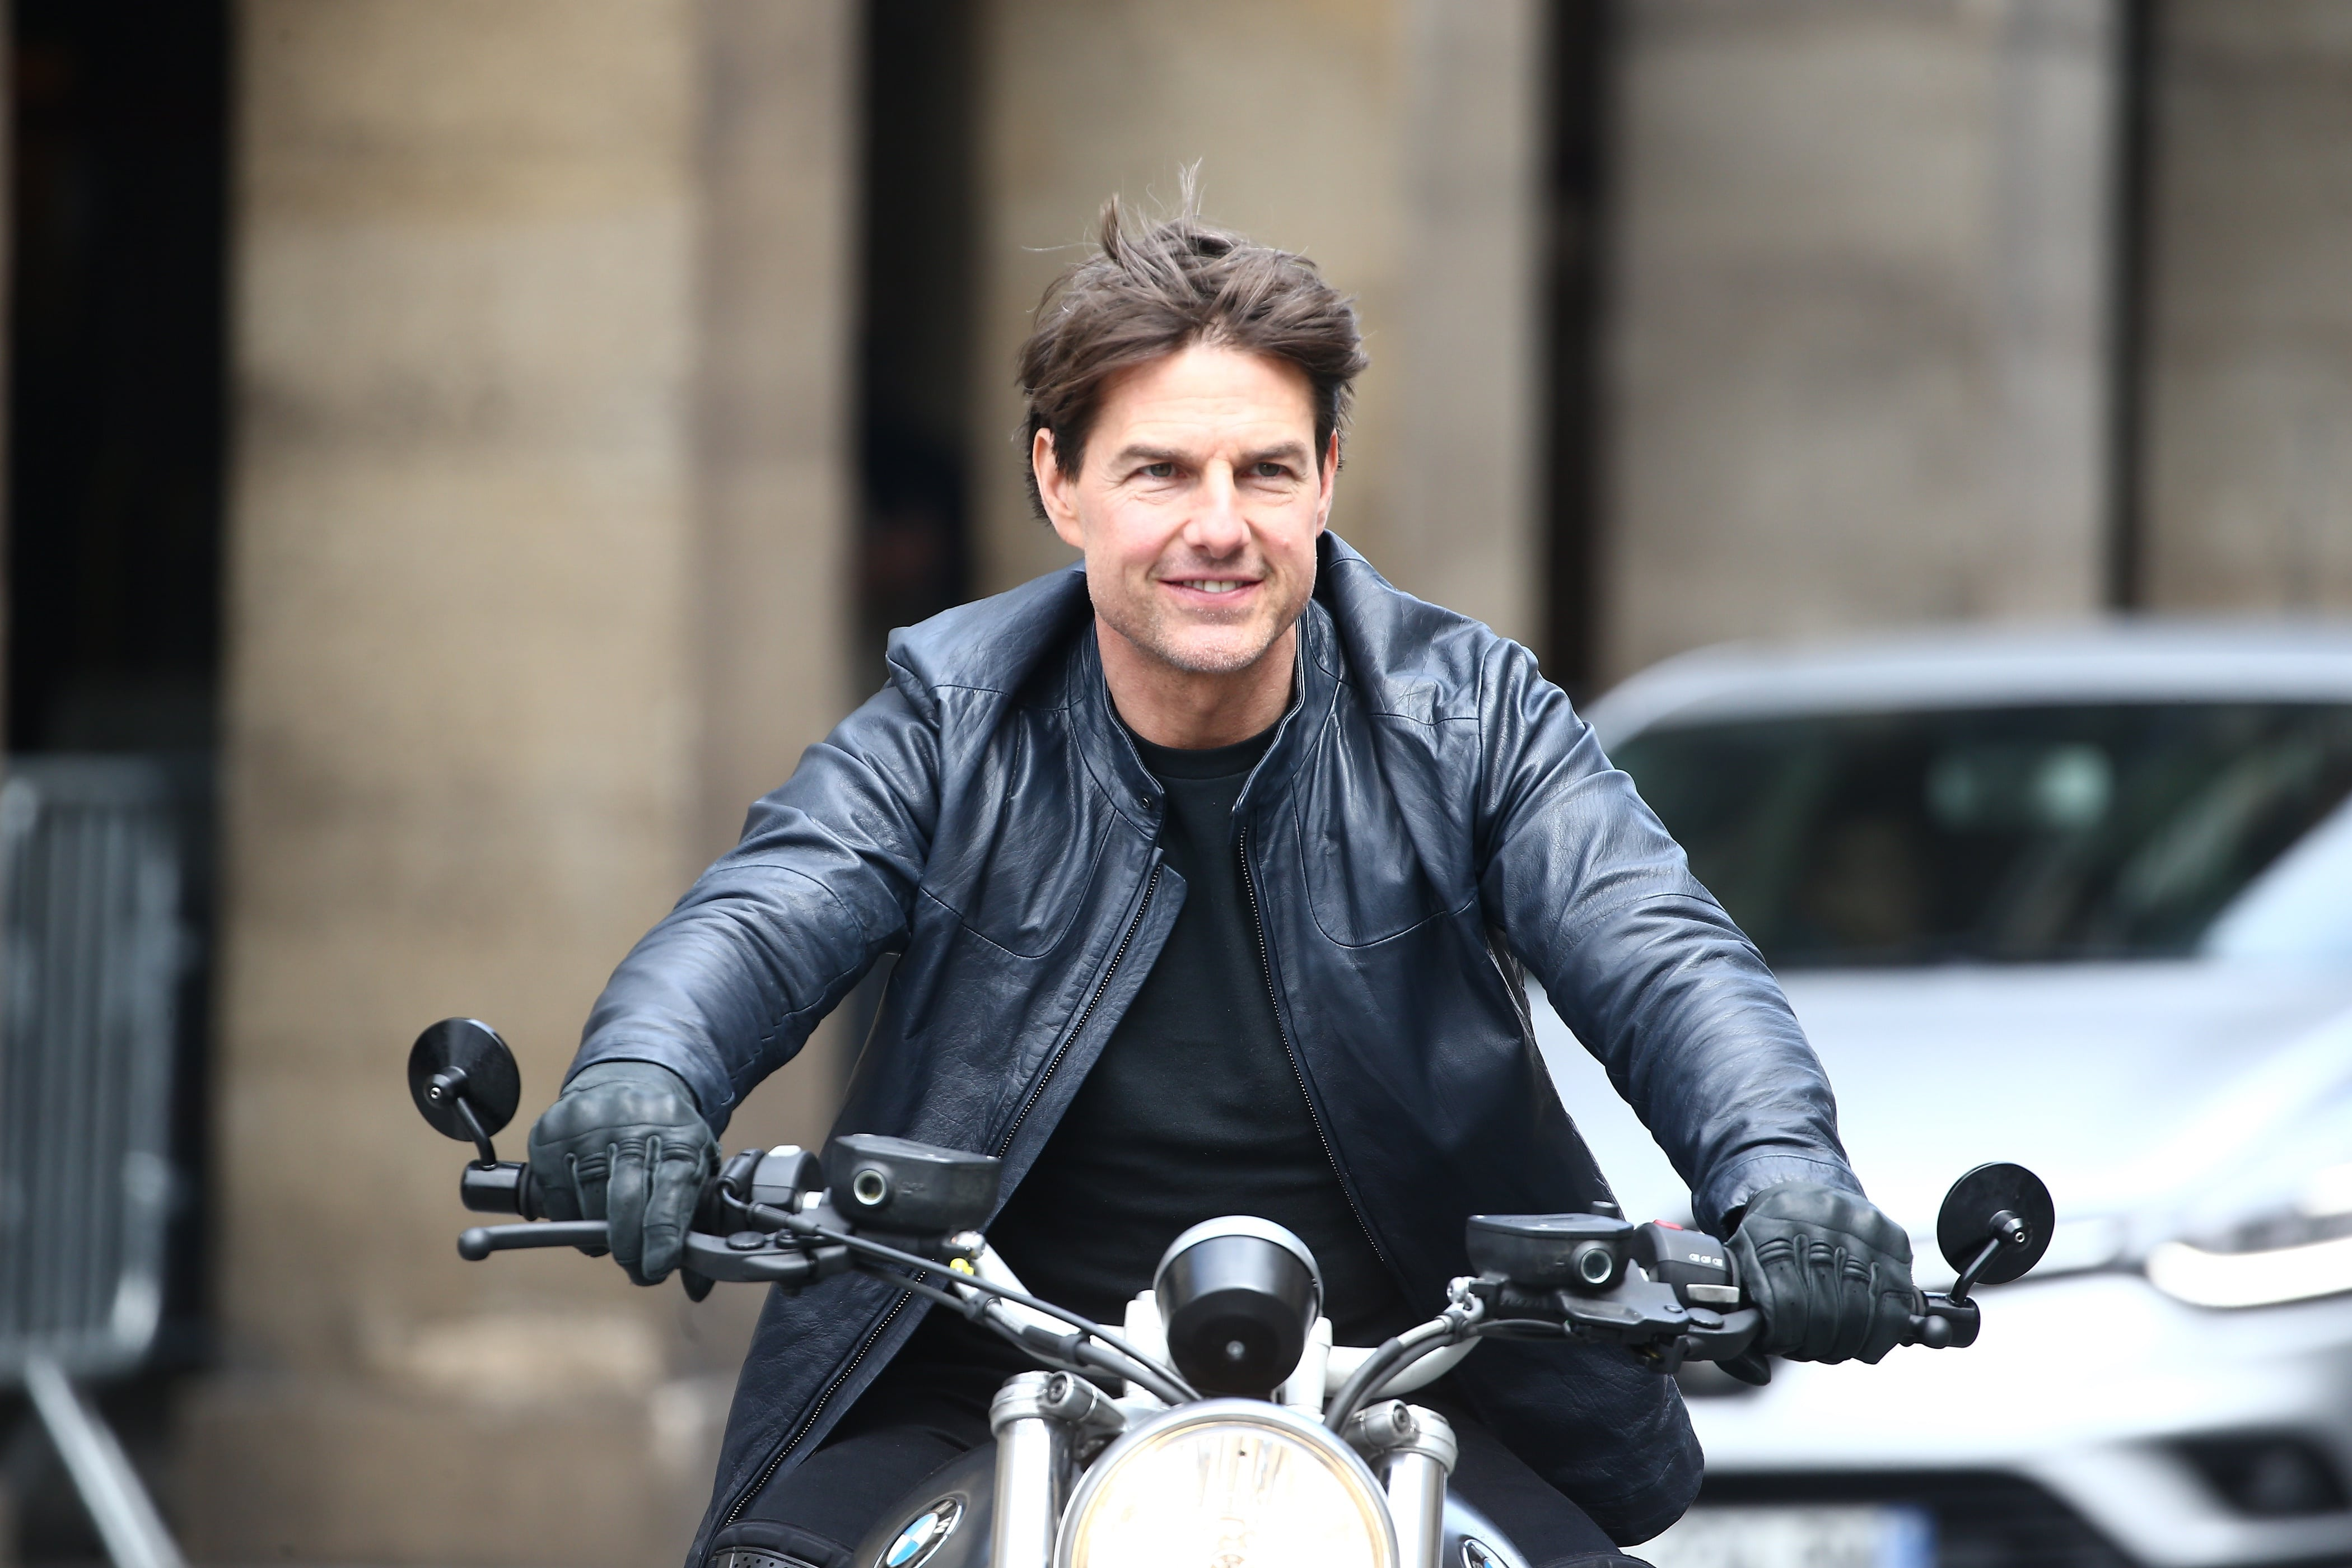 Mission Impossible Fallout Hd Wallpapers 7wallpapersnet